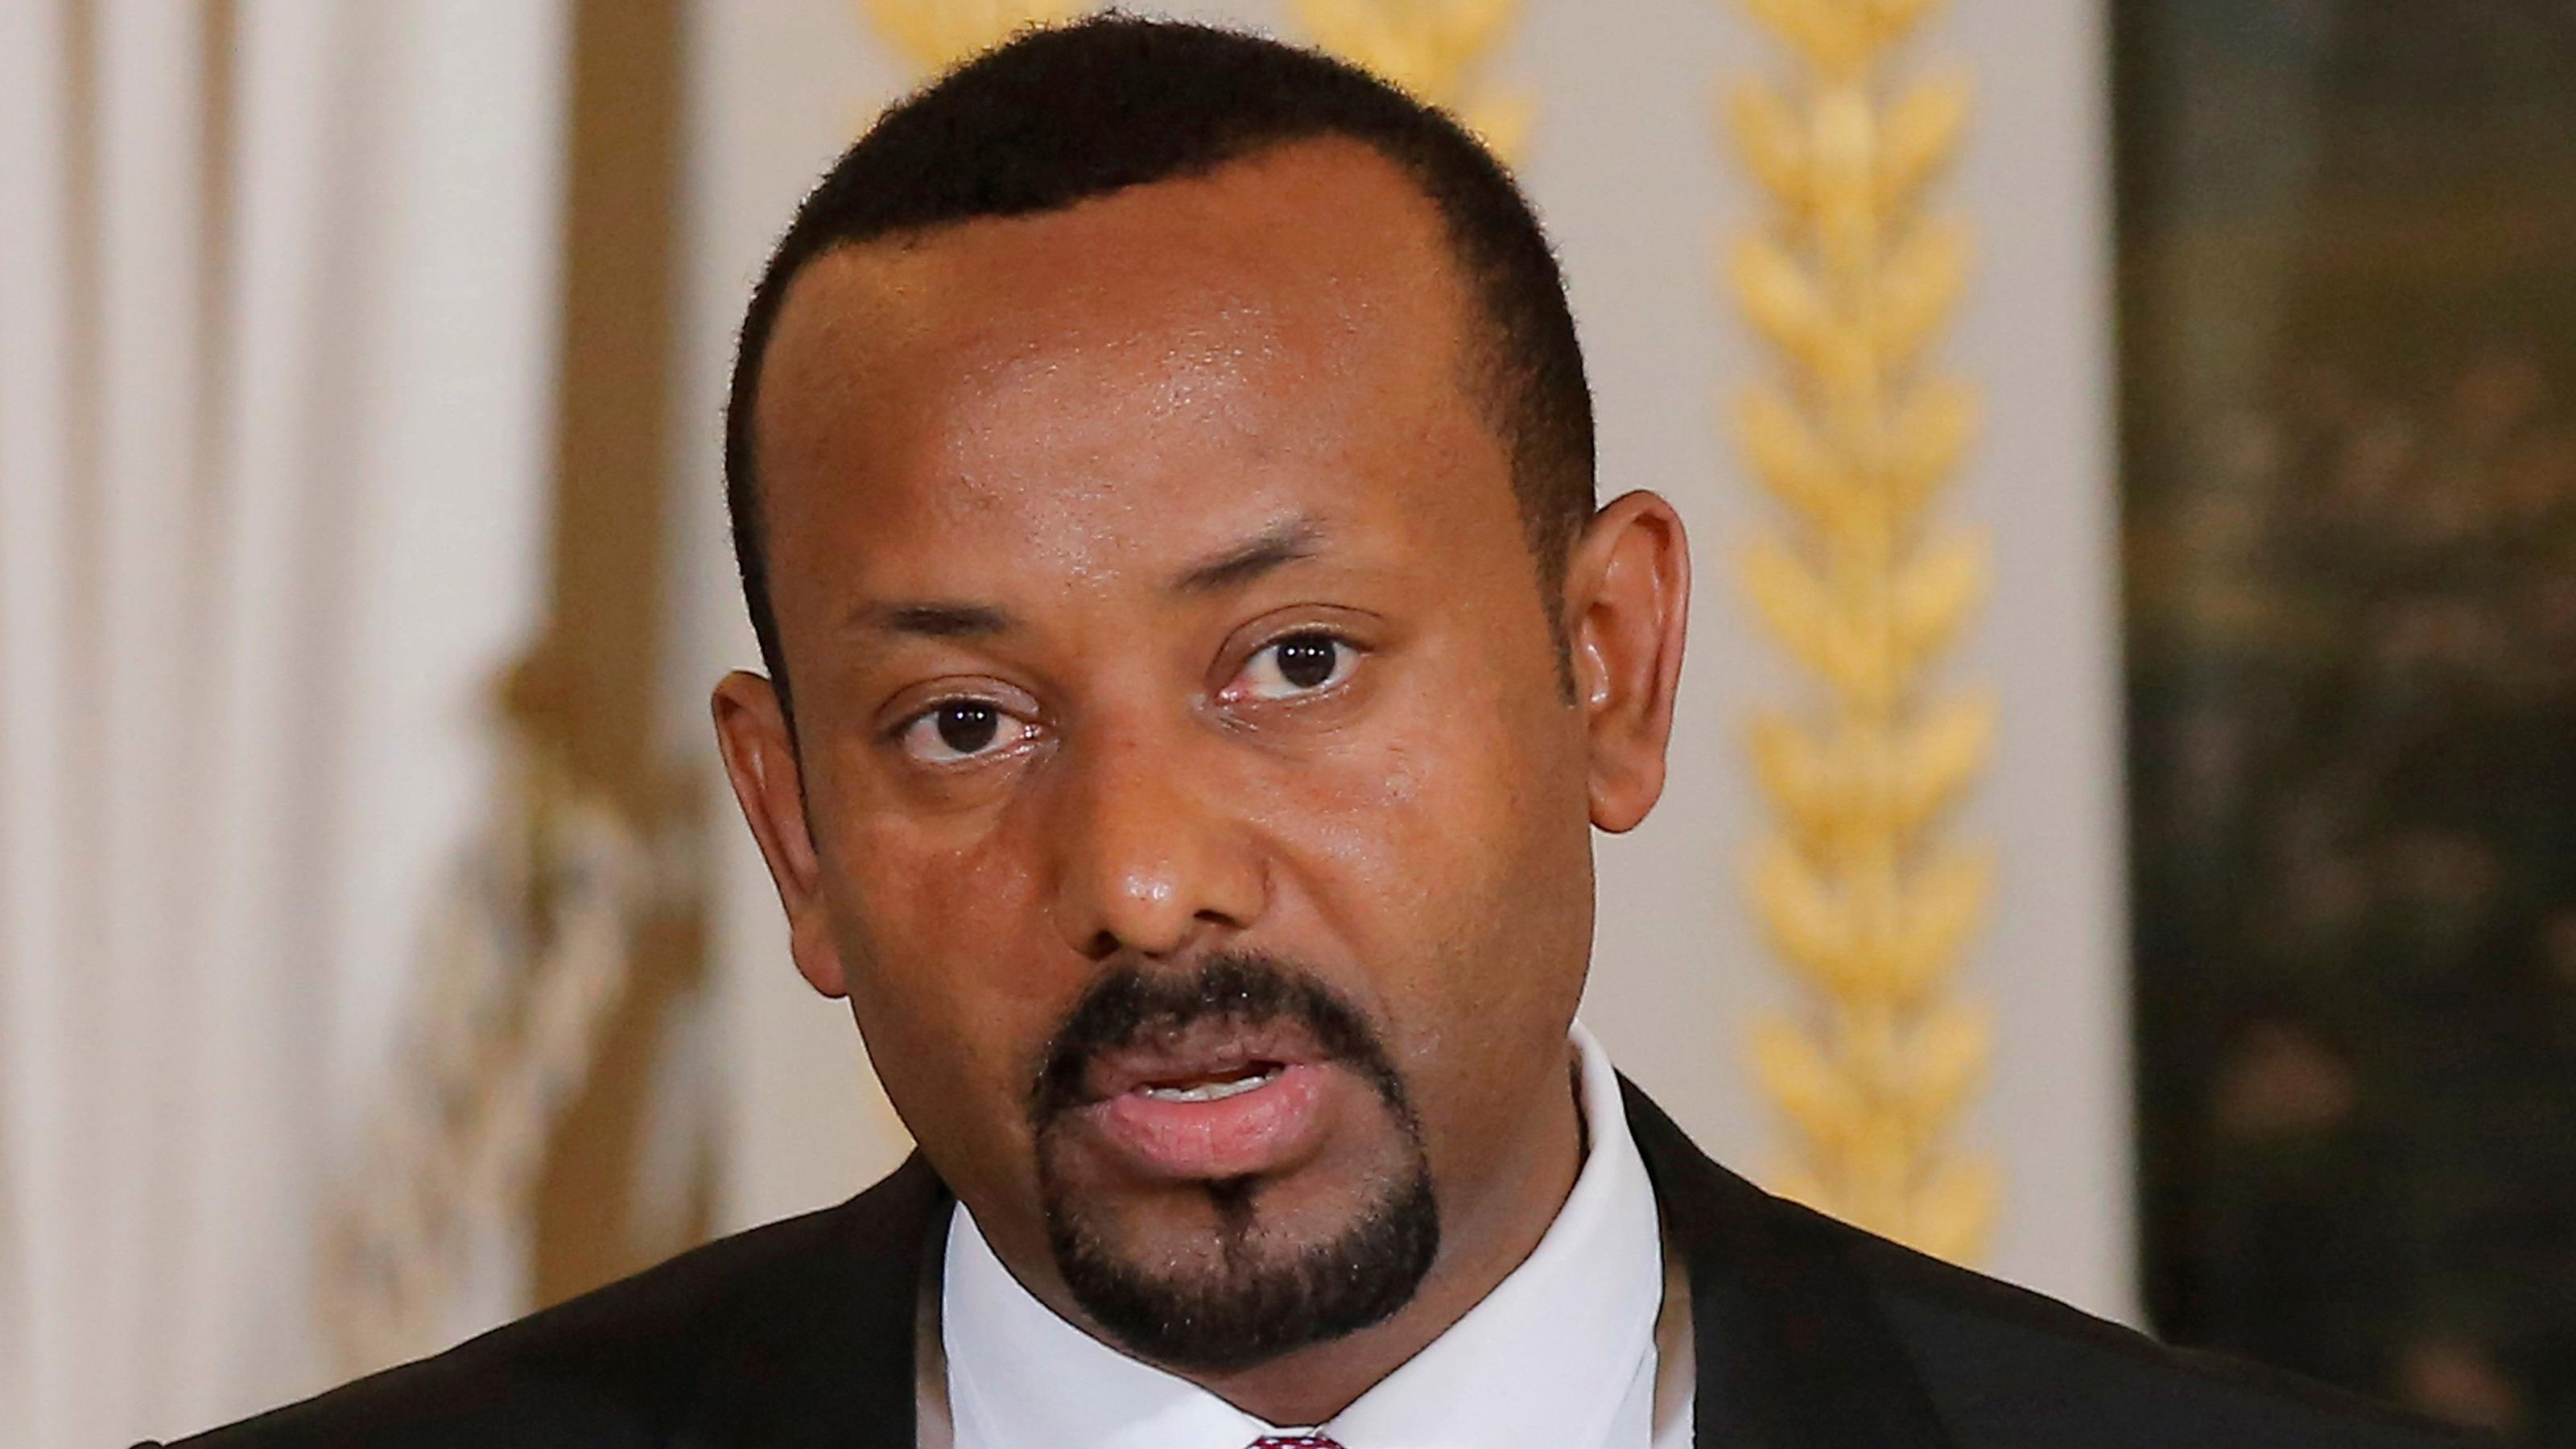 Ethiopia's flawed federal system fuels Oromo, Amhara tensions